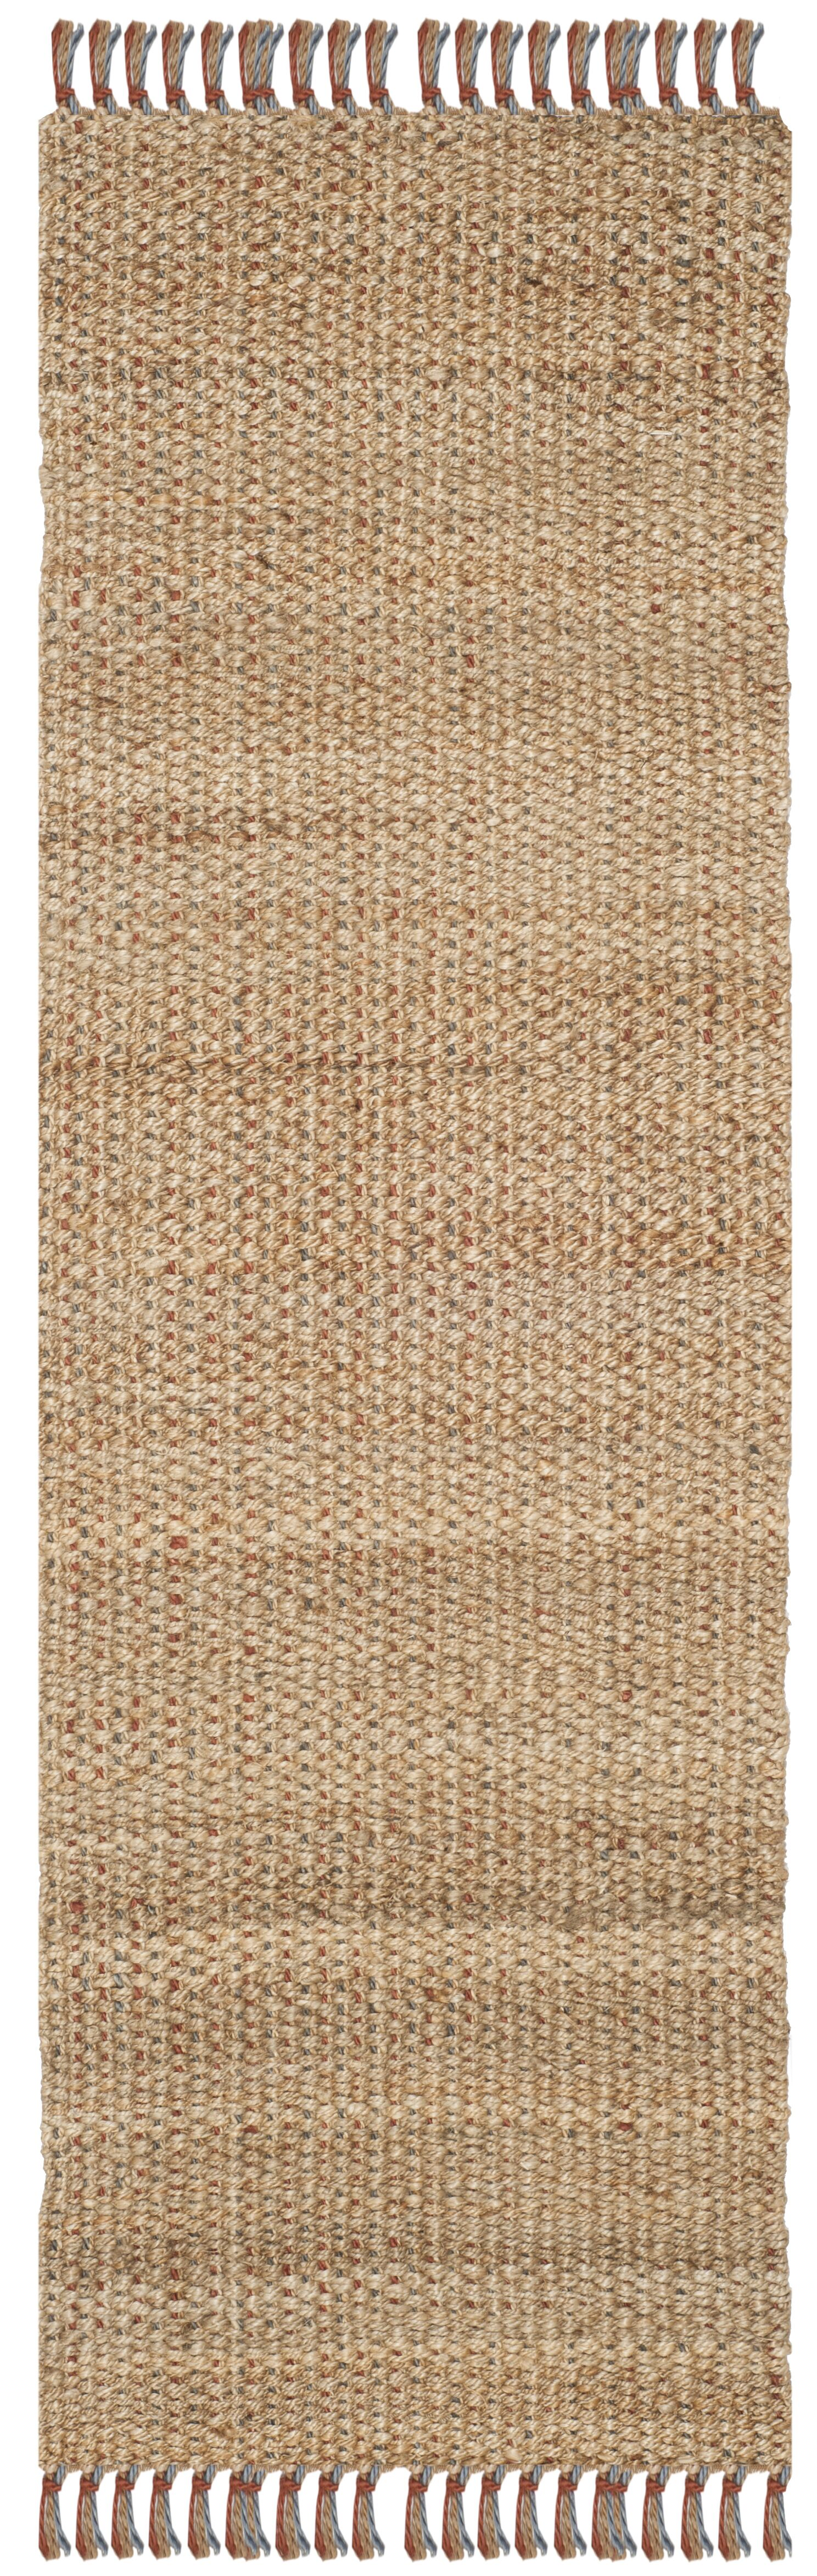 Muriel Hand Woven Brown Area Rug Rug Size: Runner 2'6